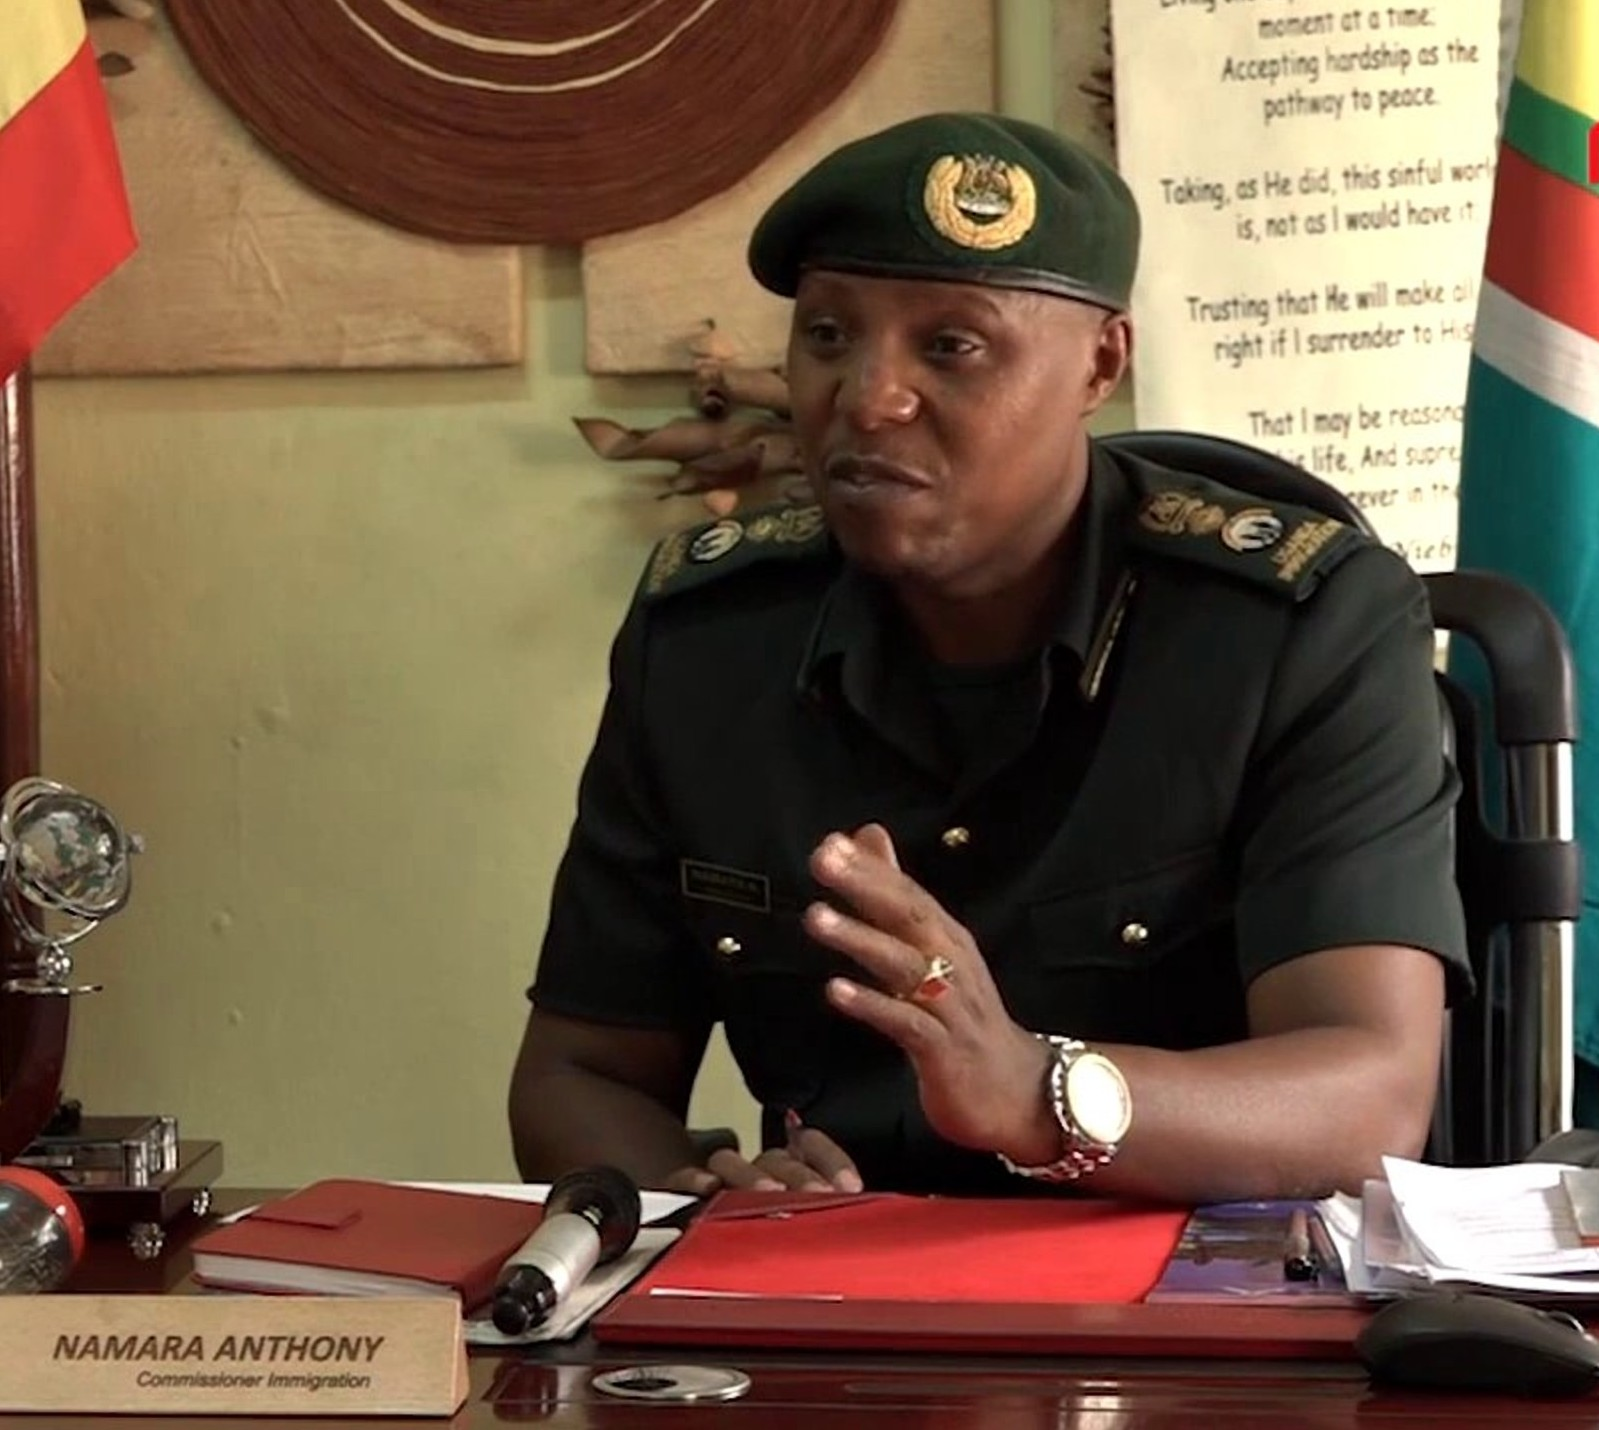 Interdicted Commissioner for Immigration Anthony Namara